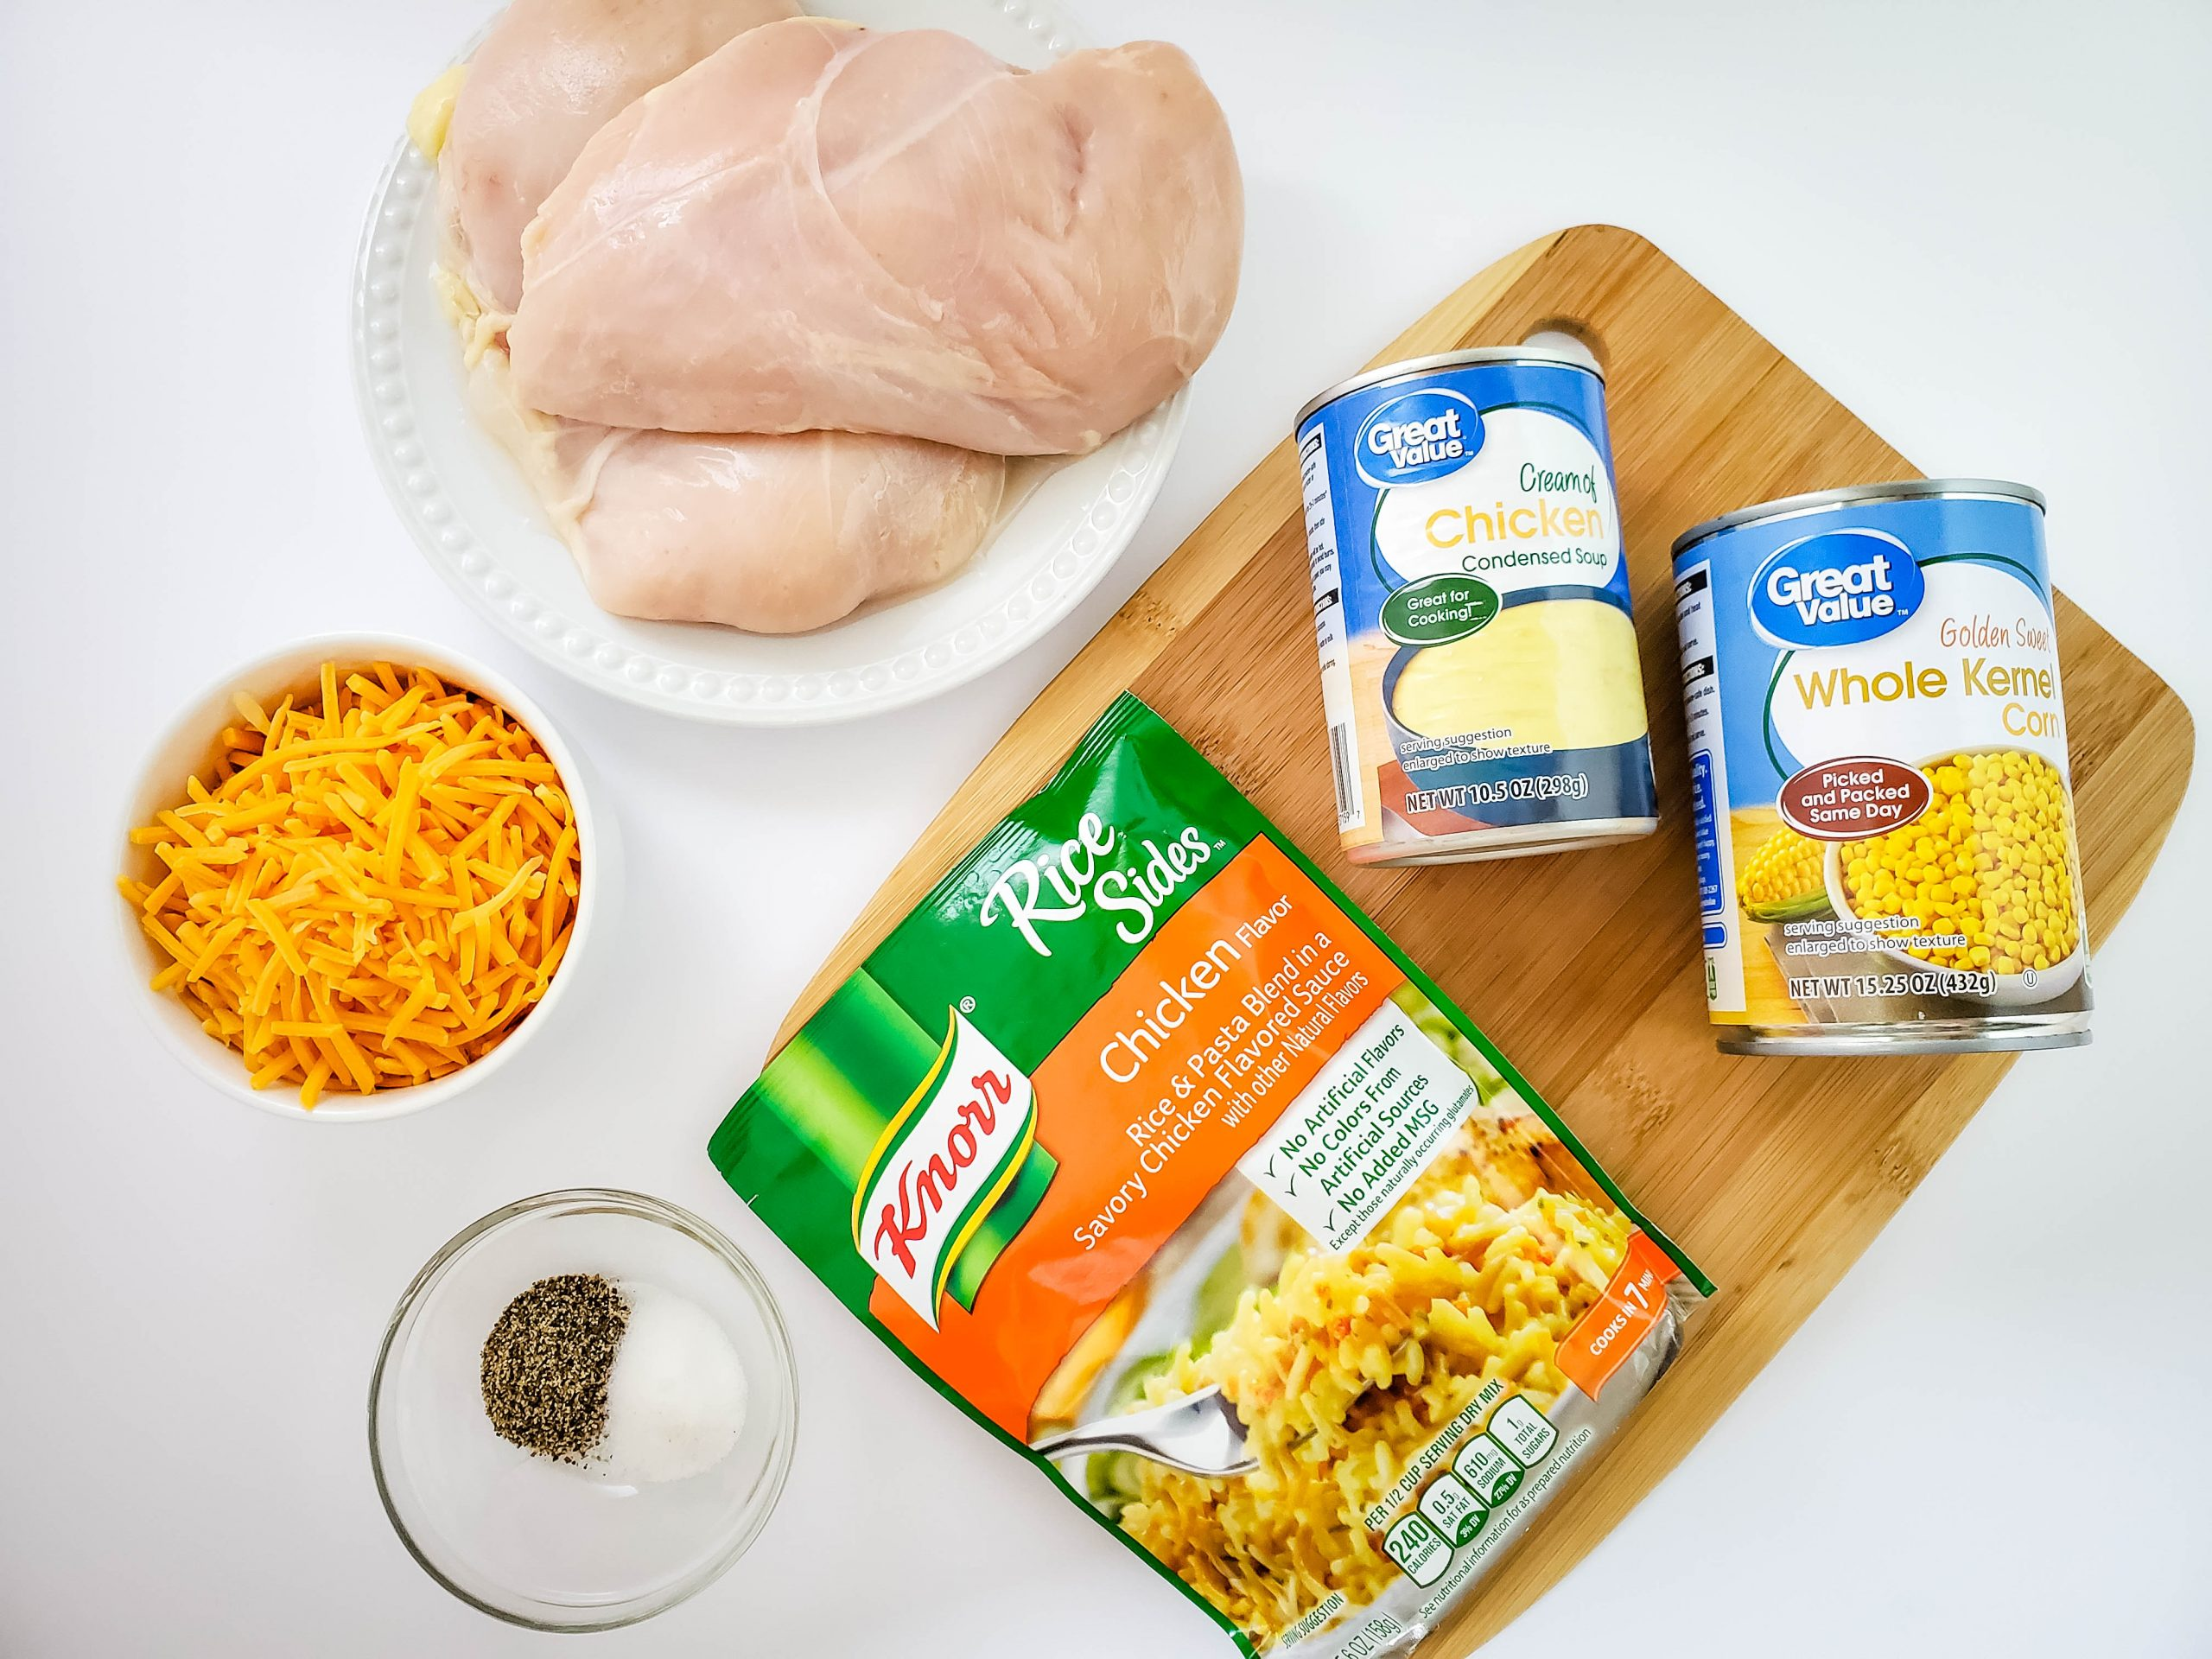 knorr chicken flavored rice, chicken breast, shredded cheddar cheese, great value cream of chicken soup, great value whole kernel corn, wooden cutting board